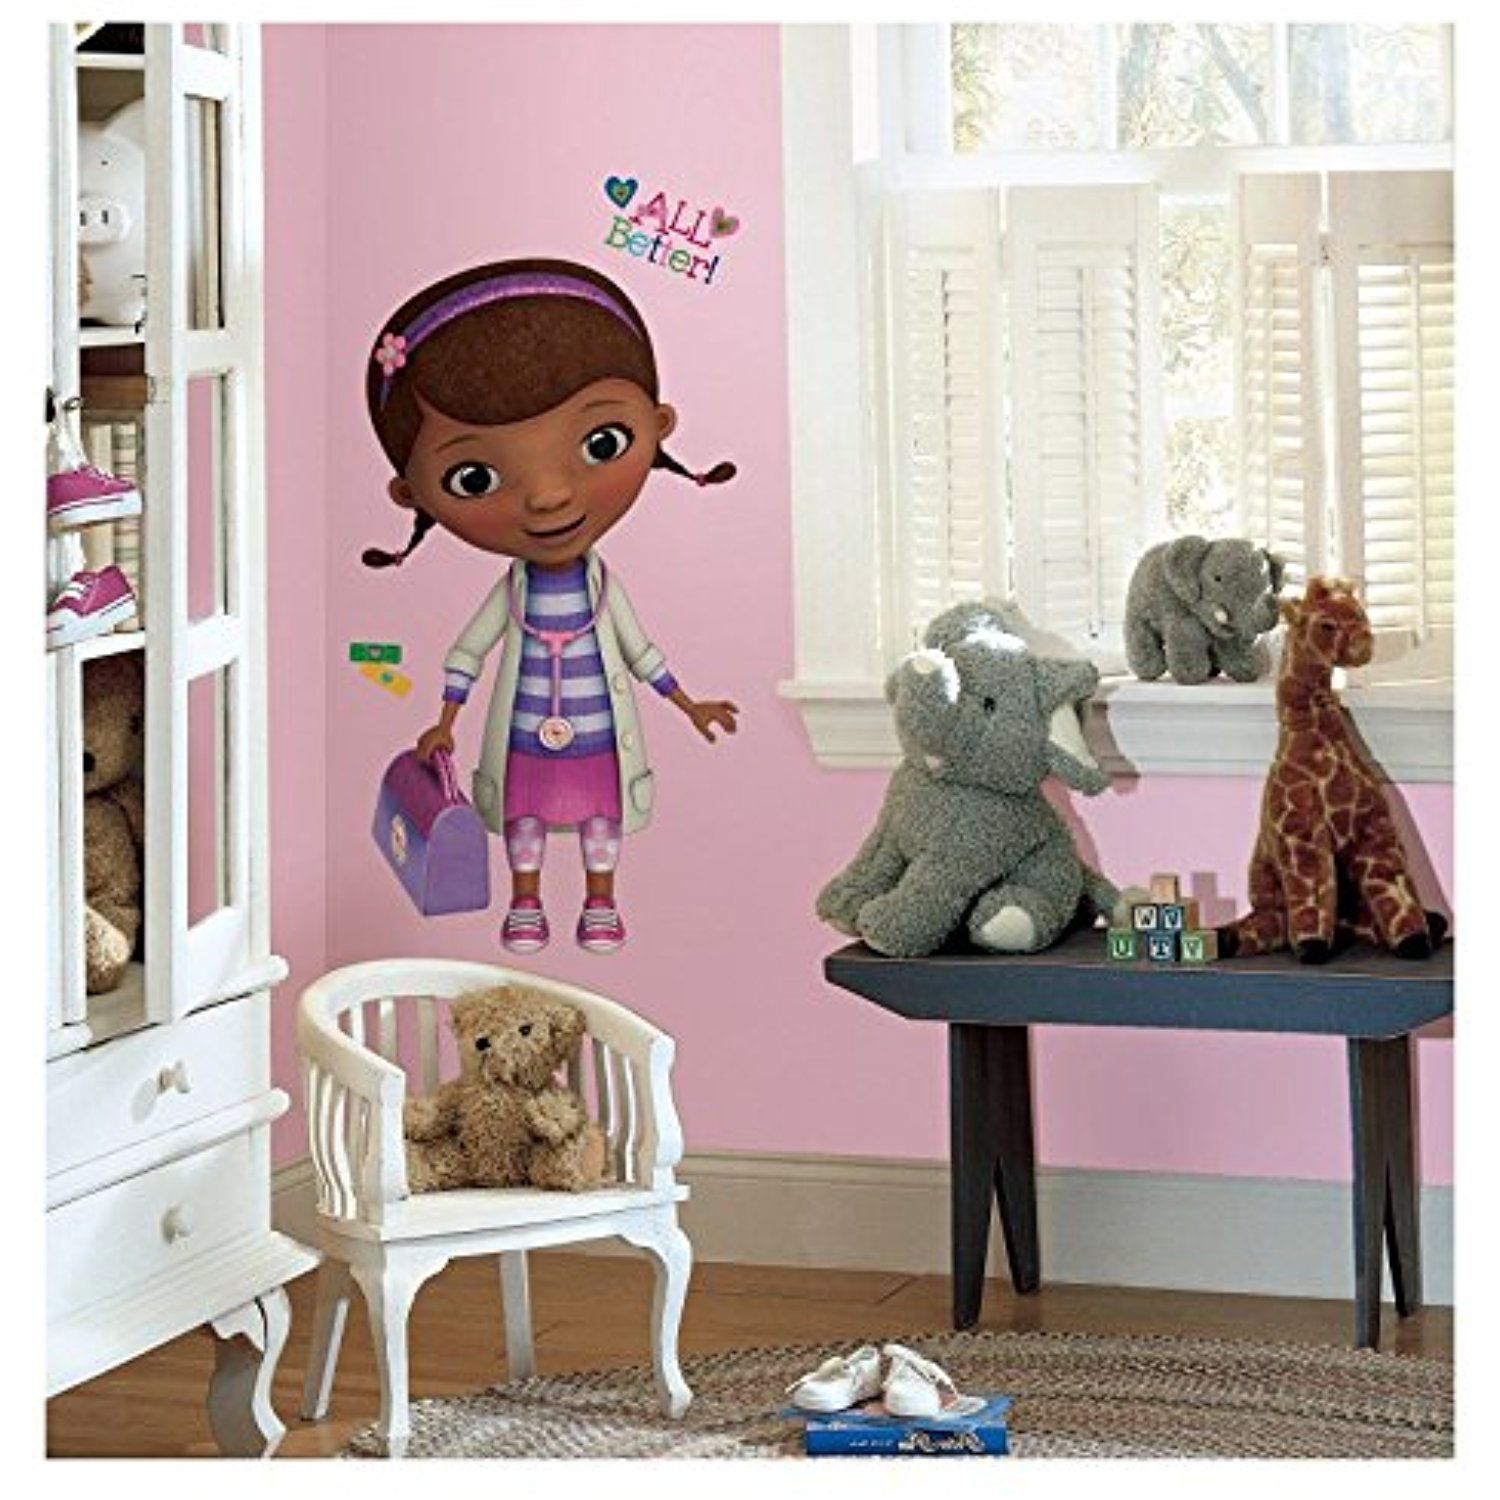 New Giant DOC MCSTUFFINS WALL DECALS Stickers Girls Bedroom Decor ...